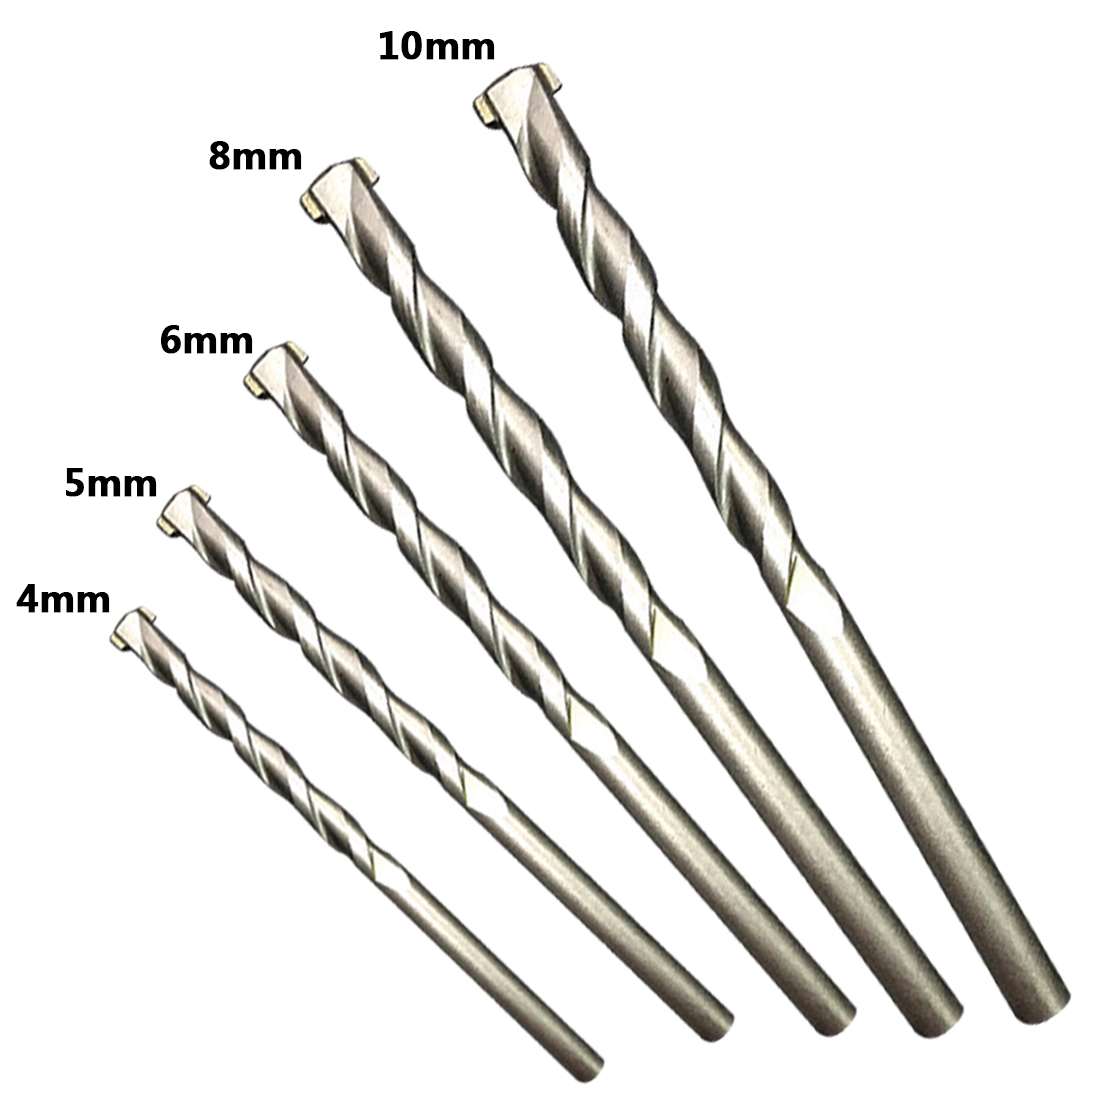 4-10mm Rotary Masonry Drill Bits Set Galvanized Drills Round Shank Spiral Flute For Drilling Concrete Brick Tile